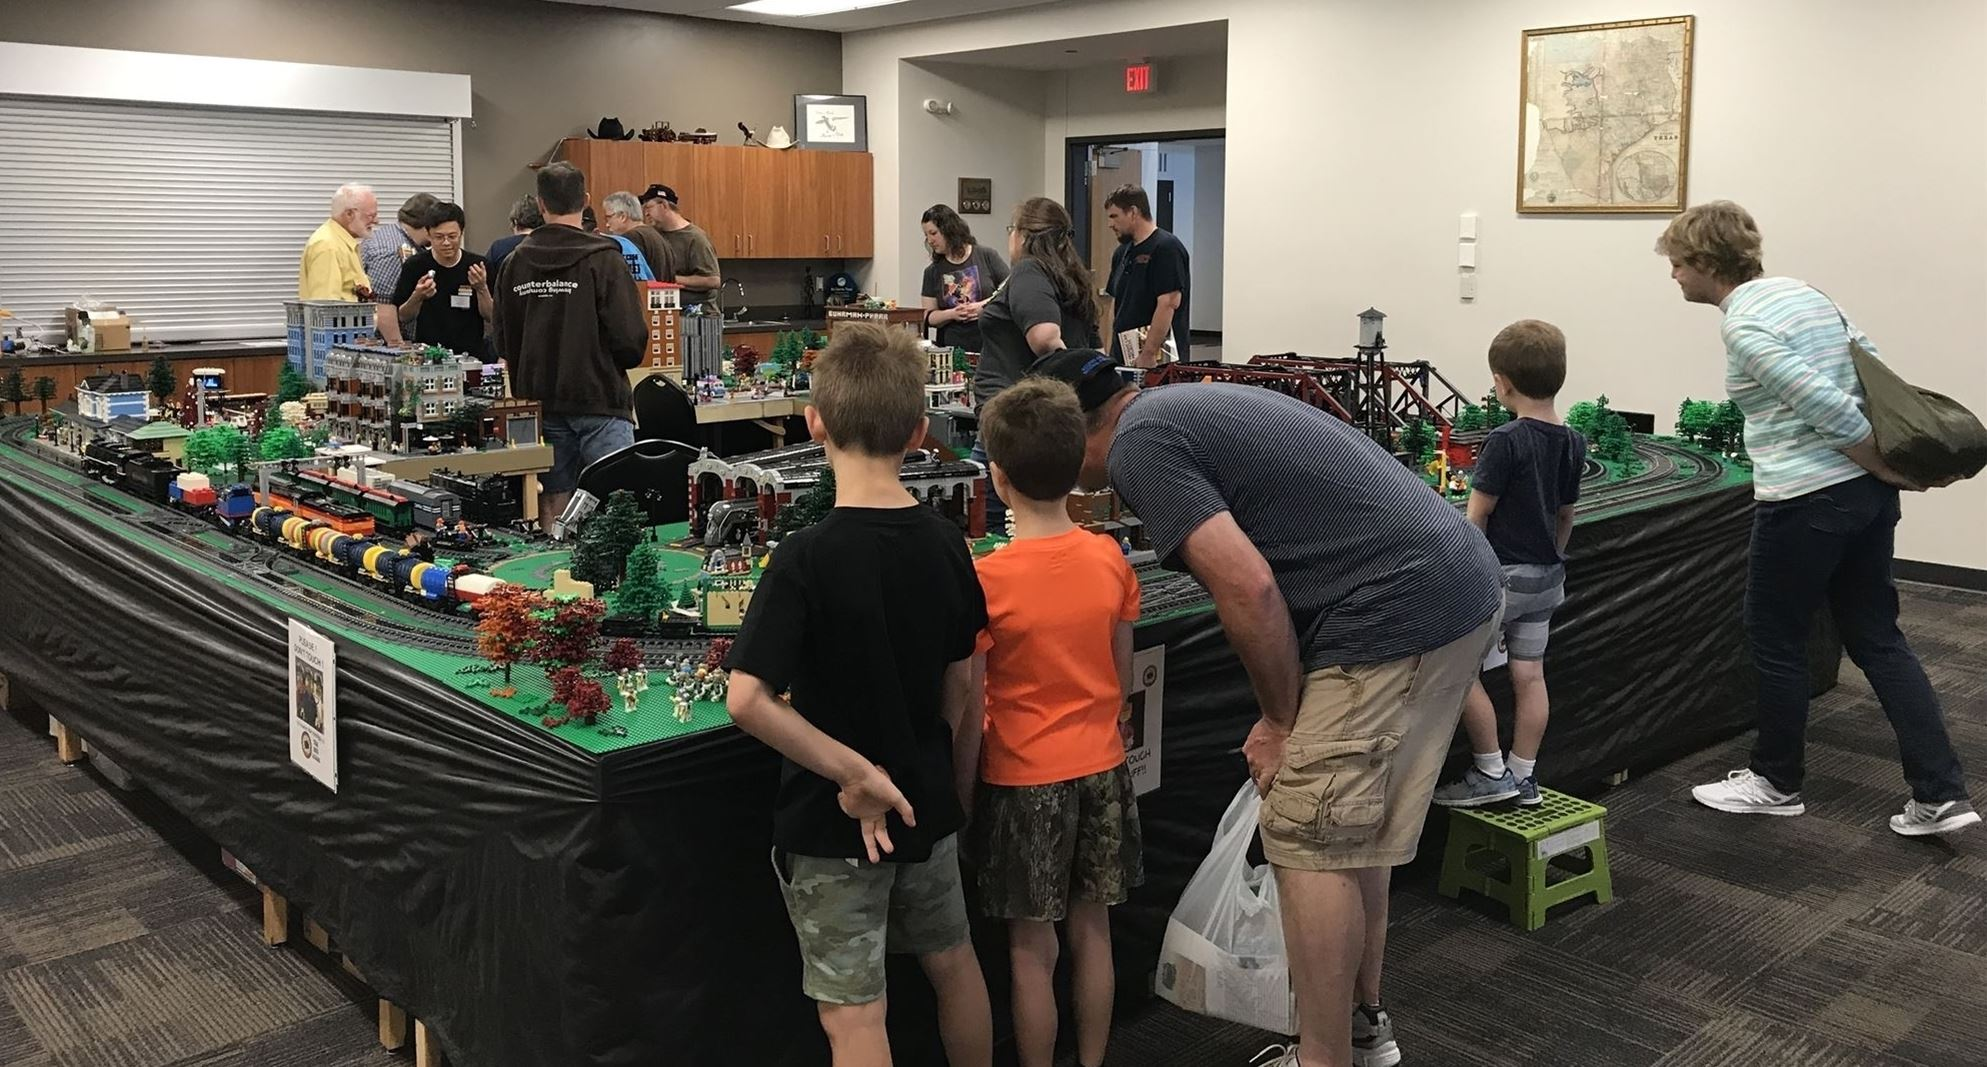 Families around the lego model train exhibit in the meeting room